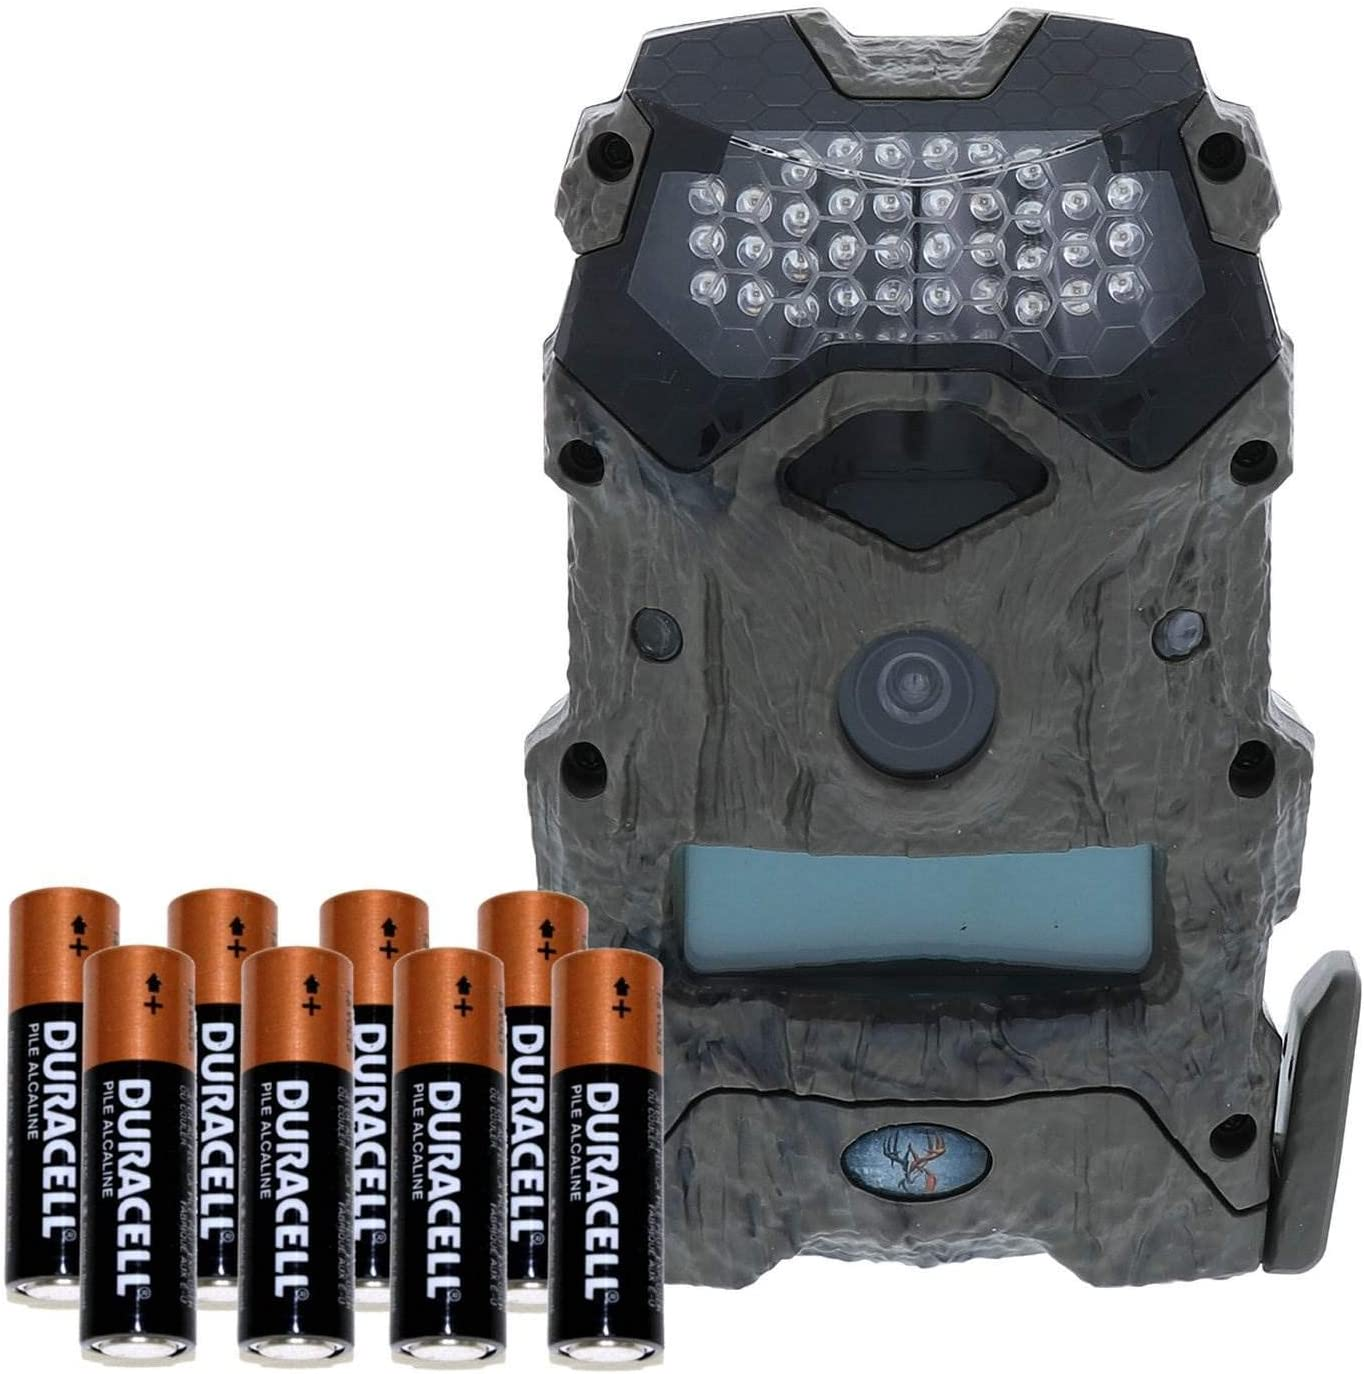 sold out Wildgame Innovations Mirage 16 New color 16MP Game Hunting Water-Resistant